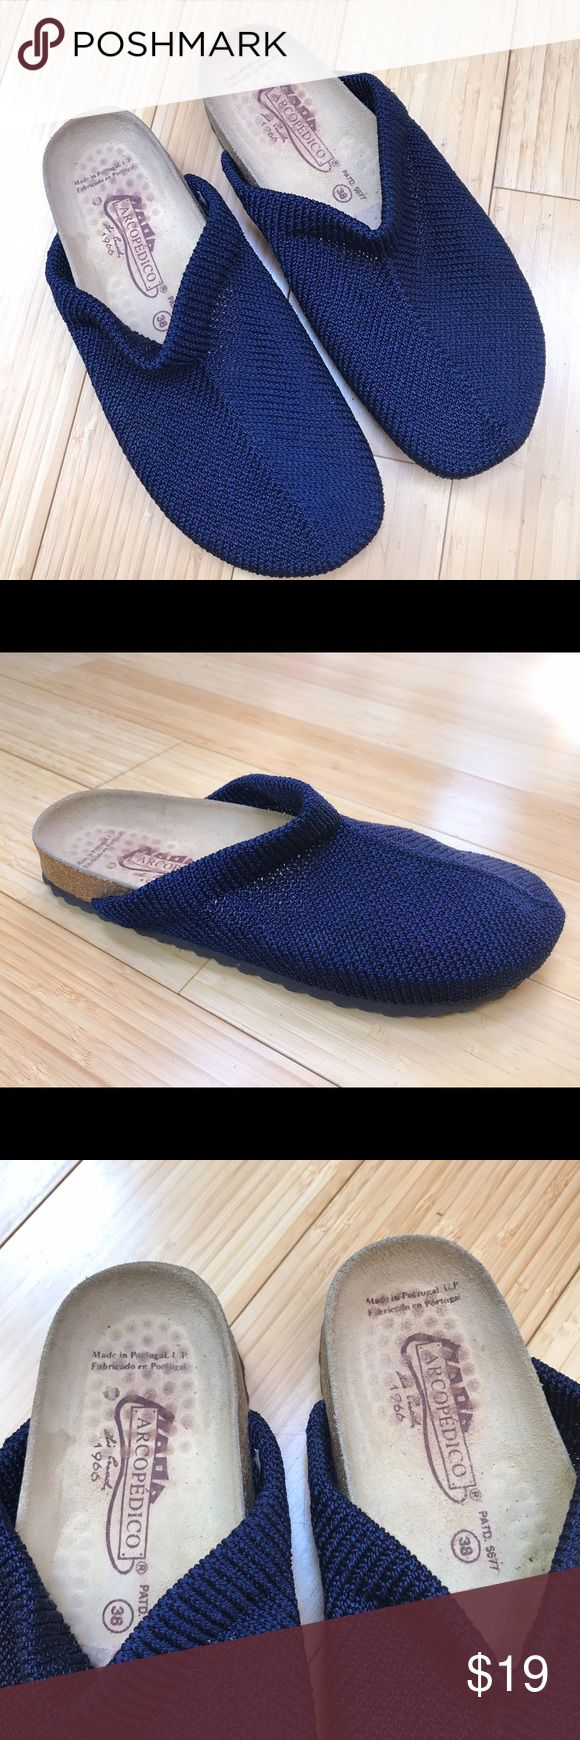 ARCOPEDICO slides shoe/clogs, 38 7.5, 8. Very cute navy blue Arcopedico slides, sz 38 or 7.5/8.  Only very lightly used. However the previous owner put in a foot insert for the toes, still present. Otherwise very good and the outsides show almost no wear. Arcopedico Shoes Mules & Clogs